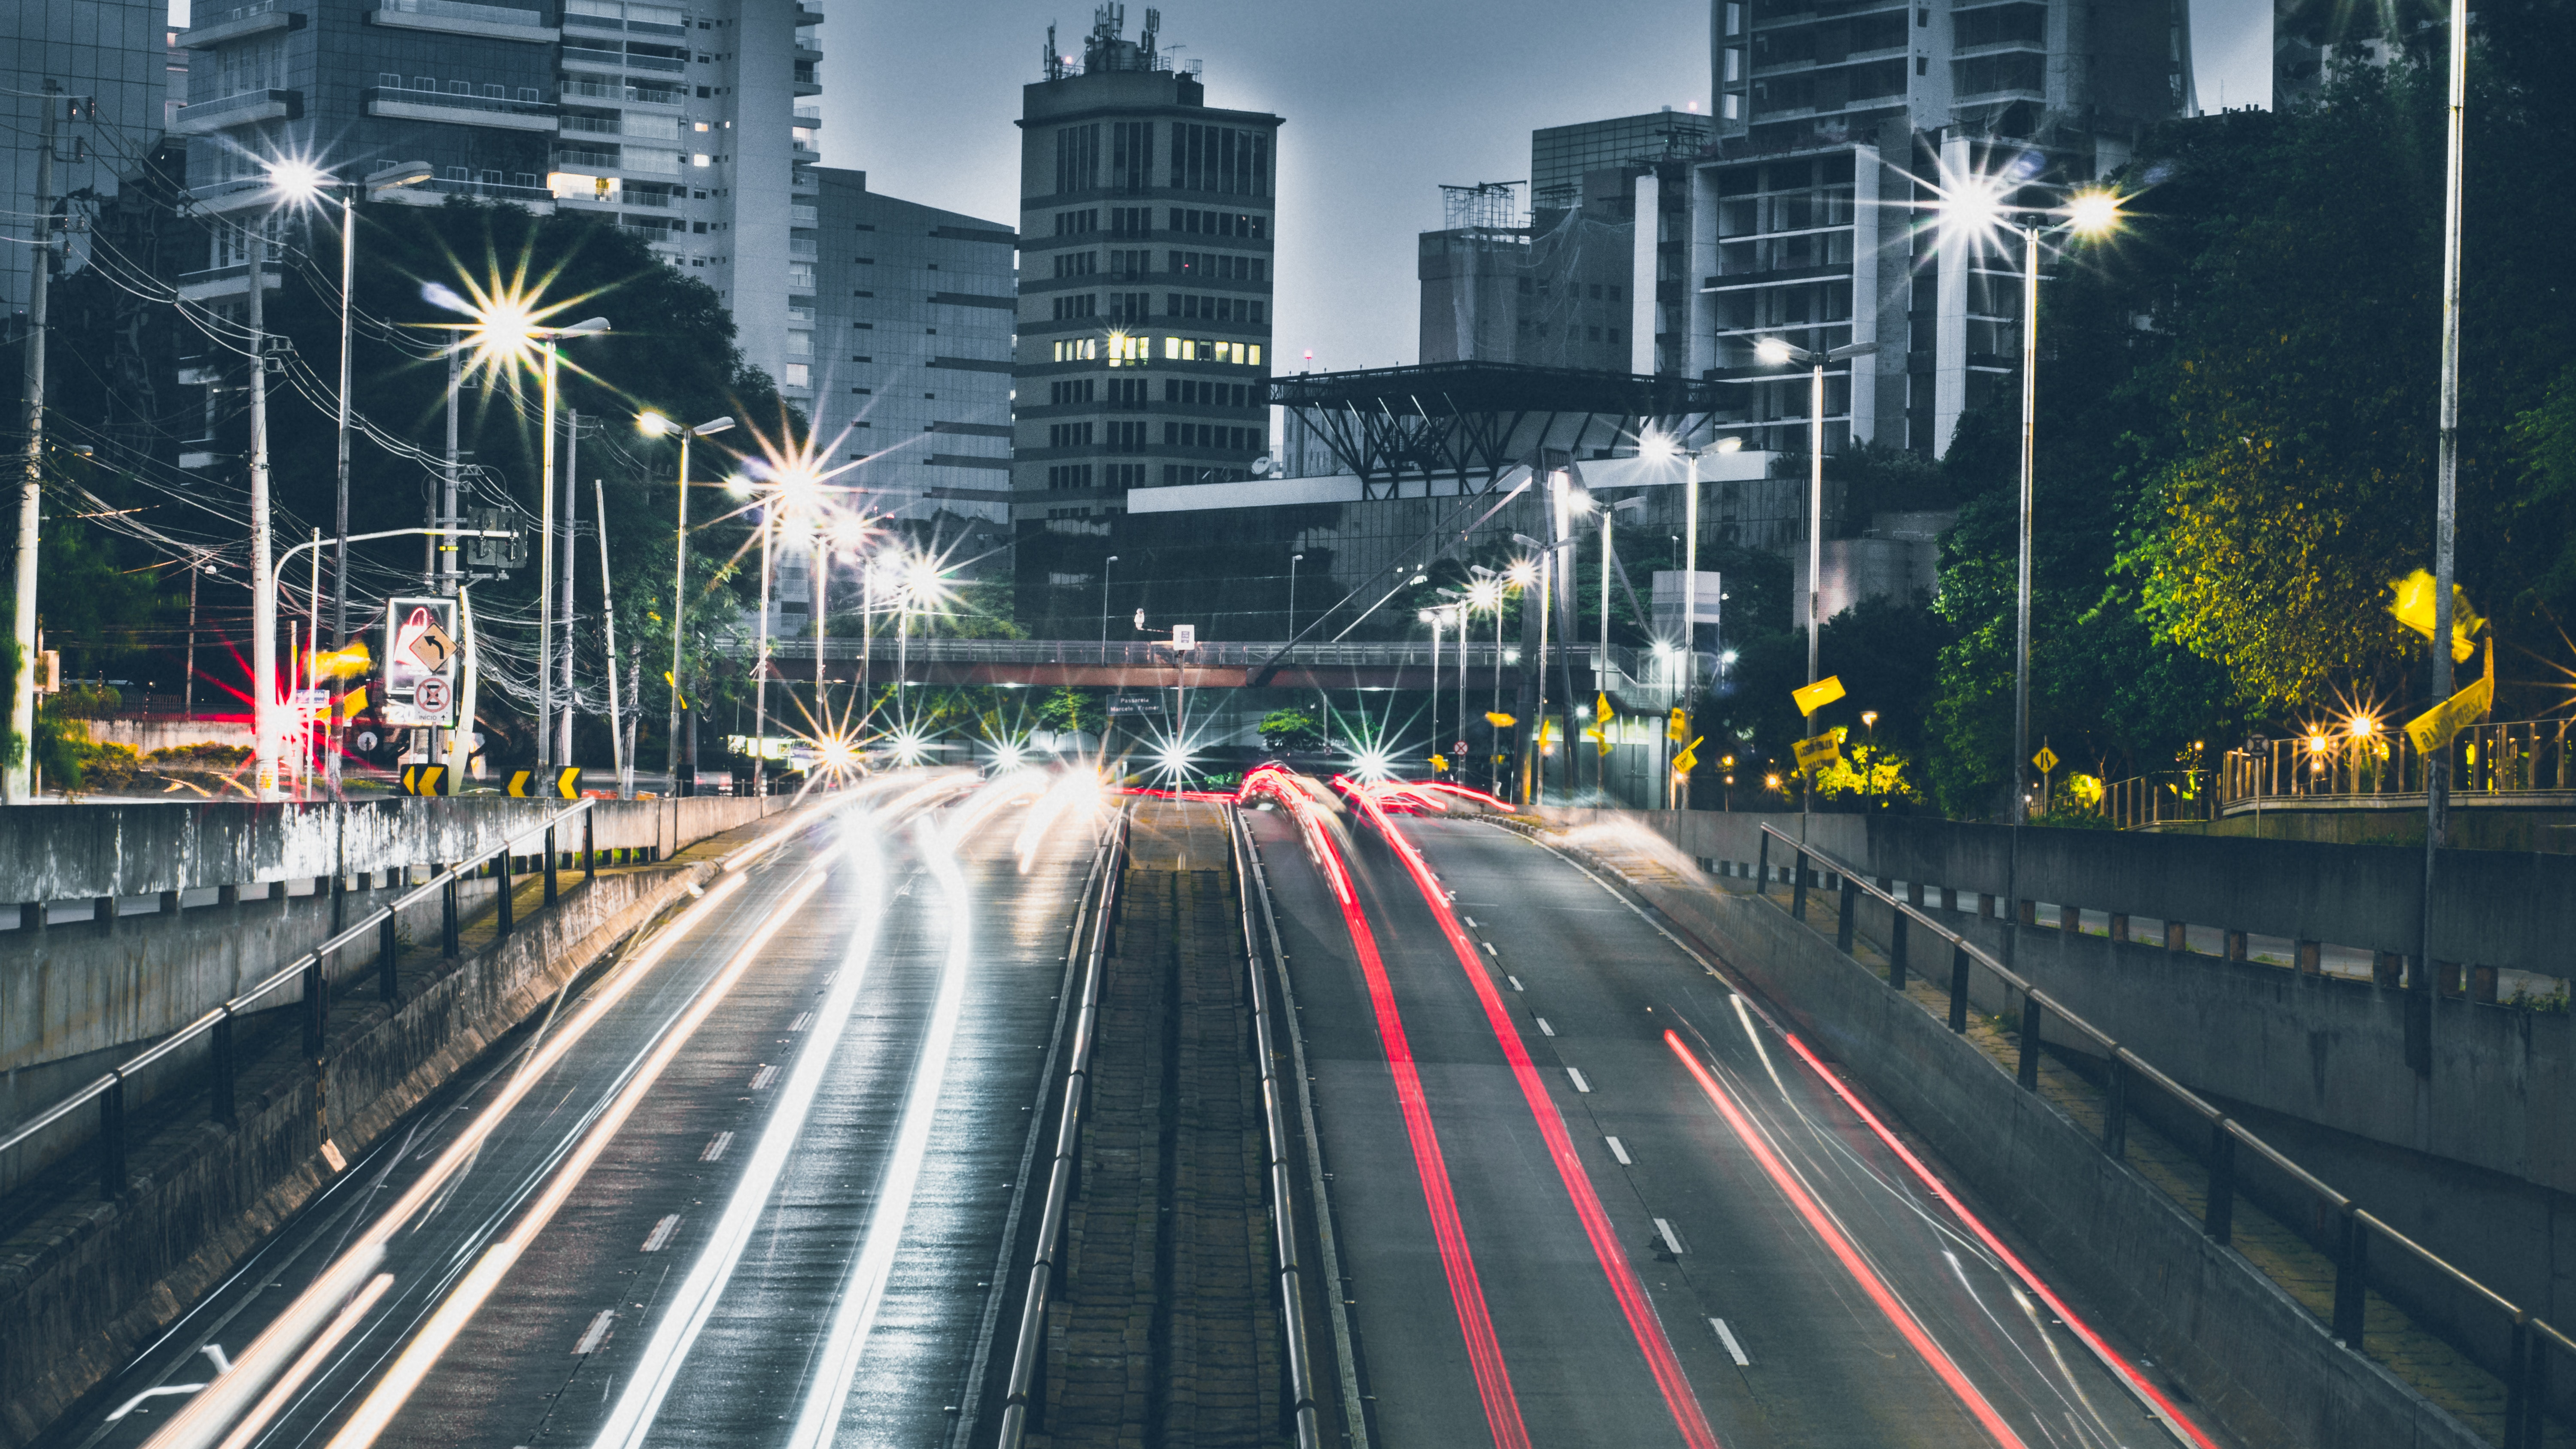 6 Ways the Internet of Things is Improving the Quality of Urban Life